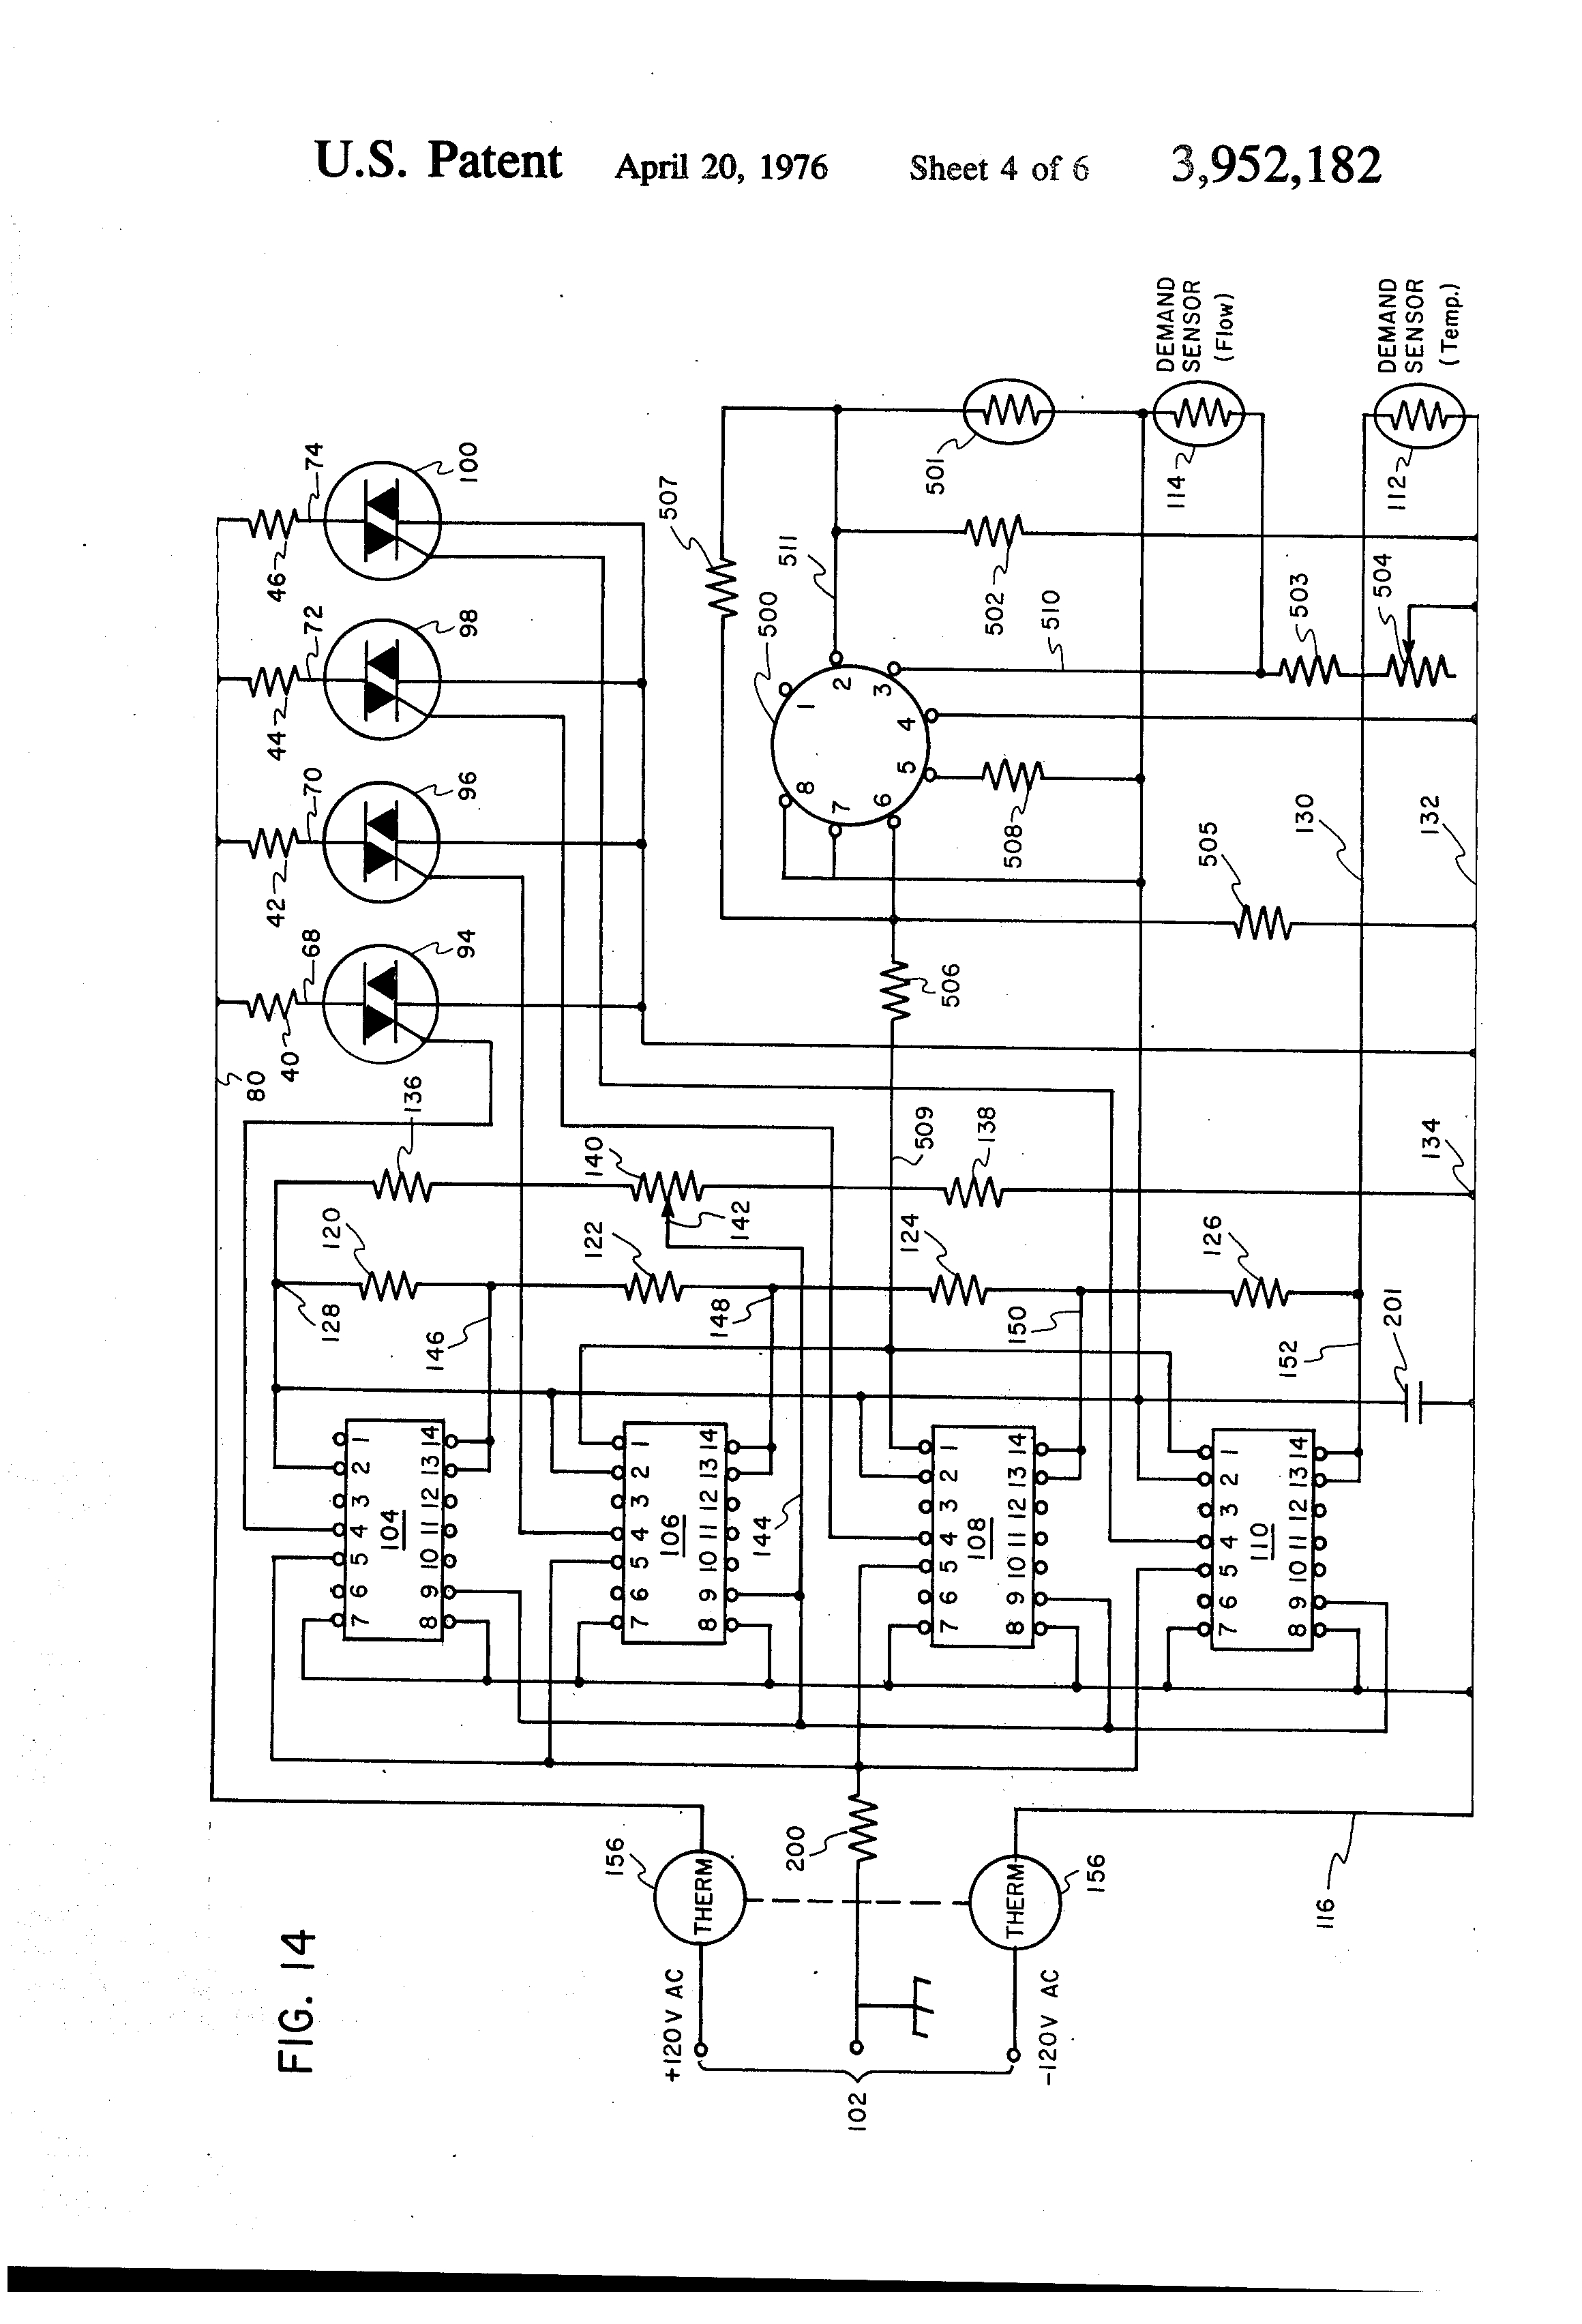 hatco wiring diagram Collection-s54 hatco booster heater wiring diagram wire center u2022 rh wiringgoo co Hatco C 12 Wiring 6-q